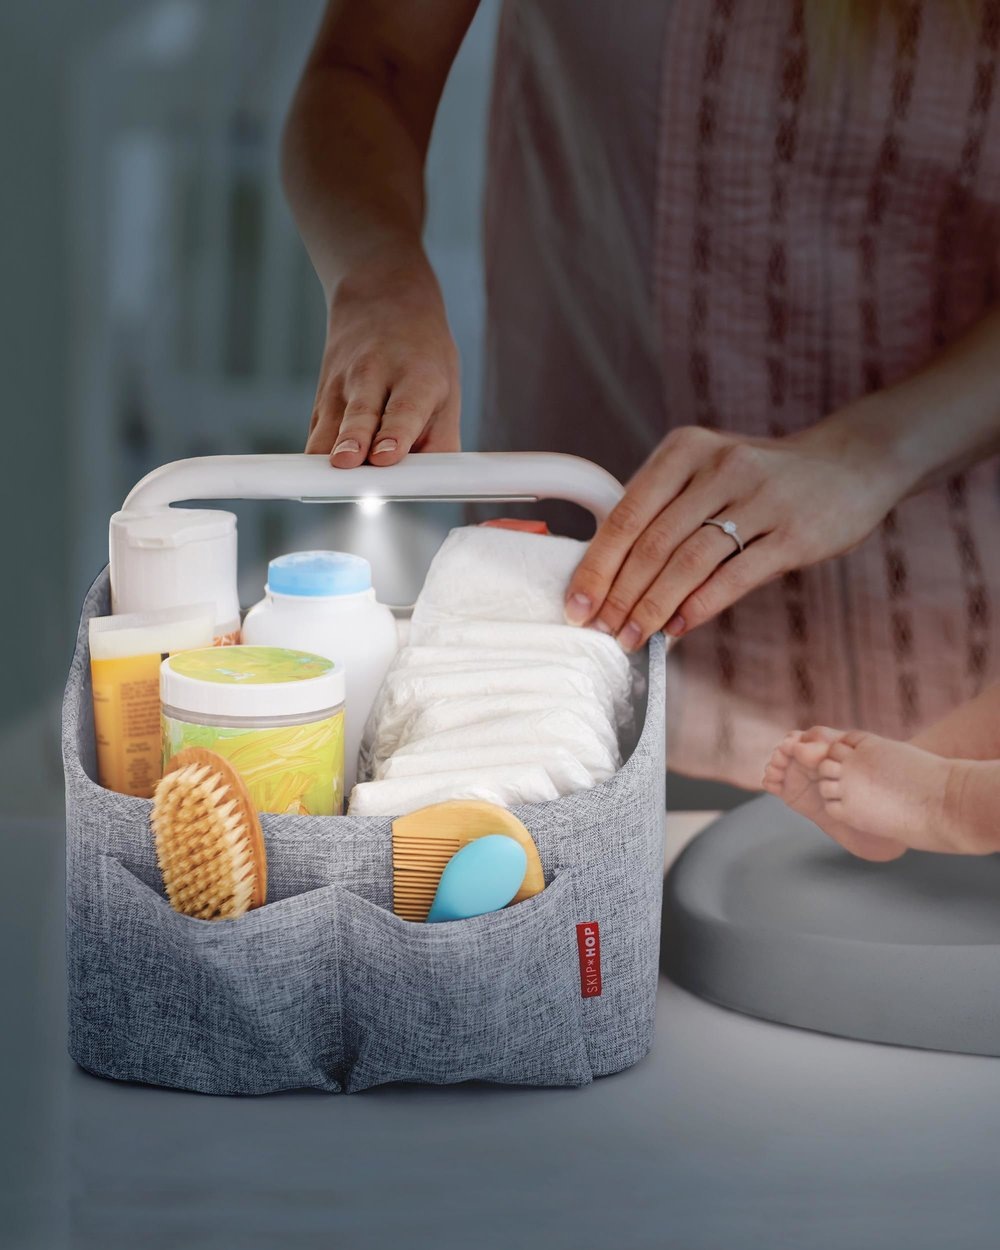 Skip Hop Light-Up Diaper Caddy, $40